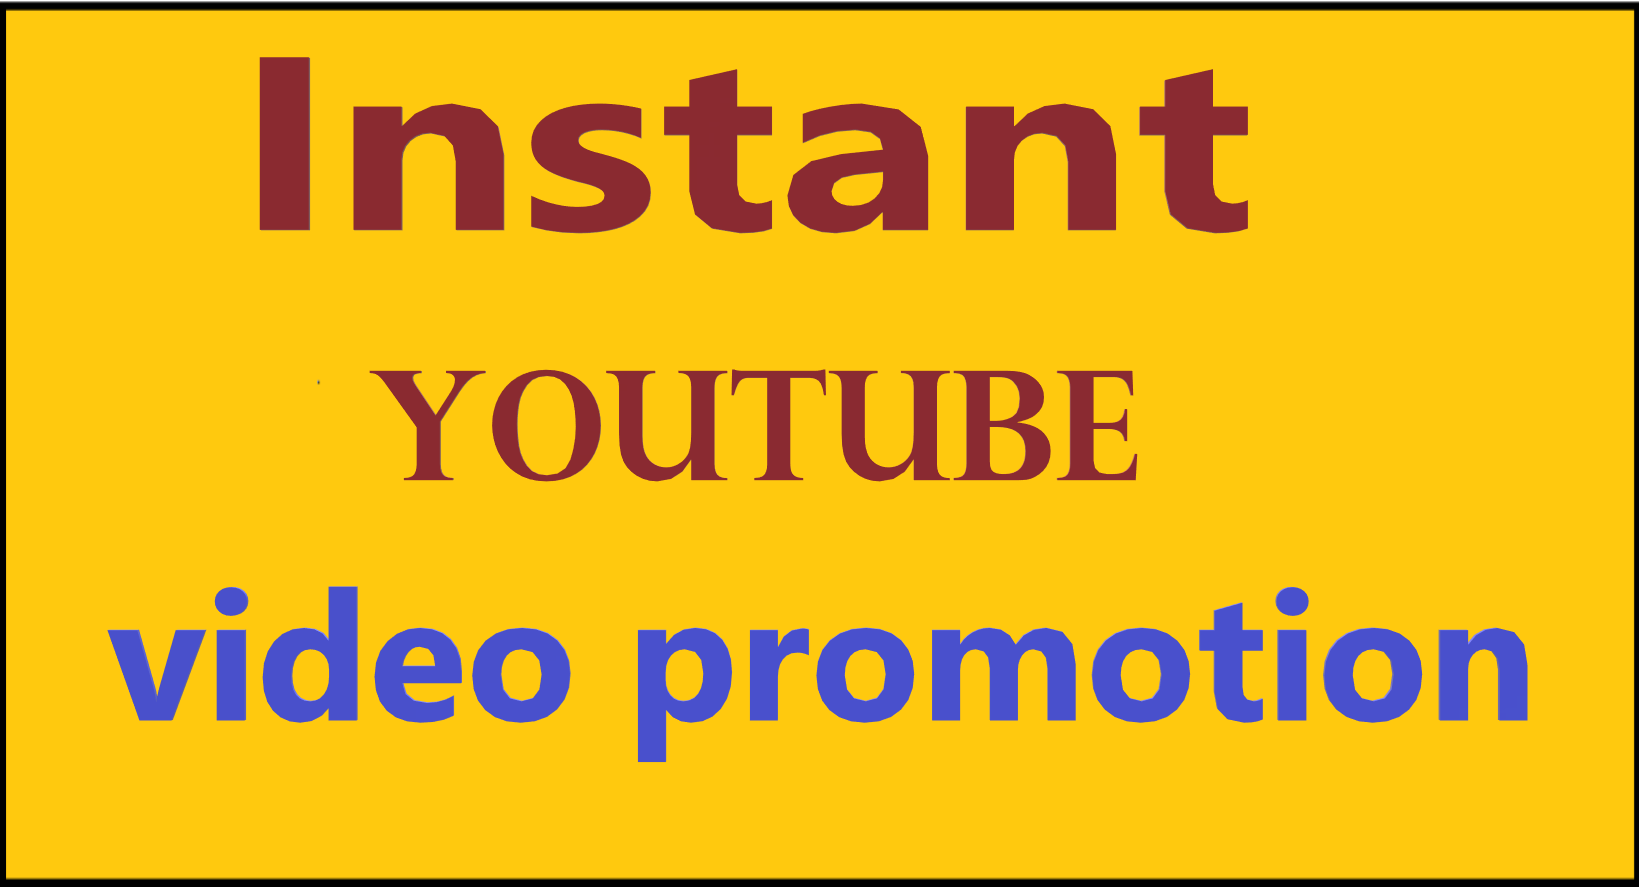 i will viral your You-Tube video promotion to grow your fans